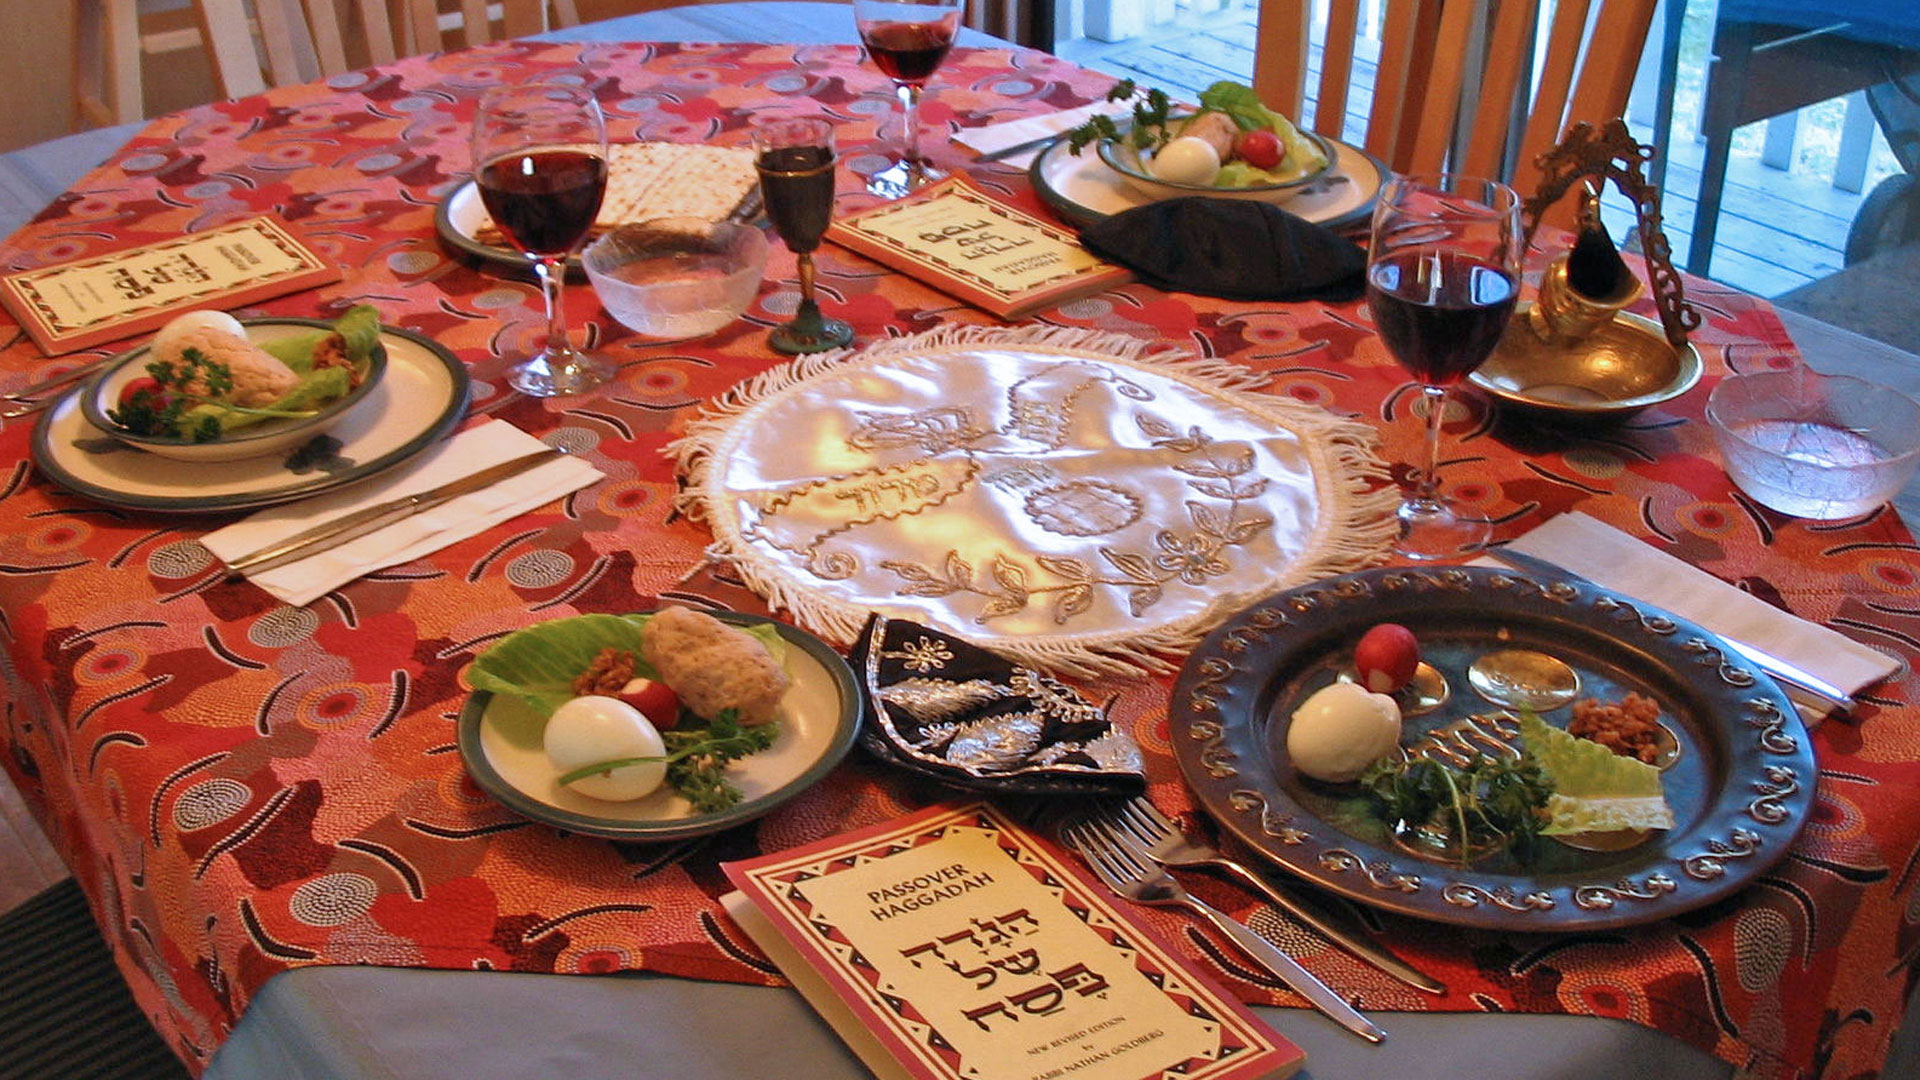 Passover Traditions: A Reflection